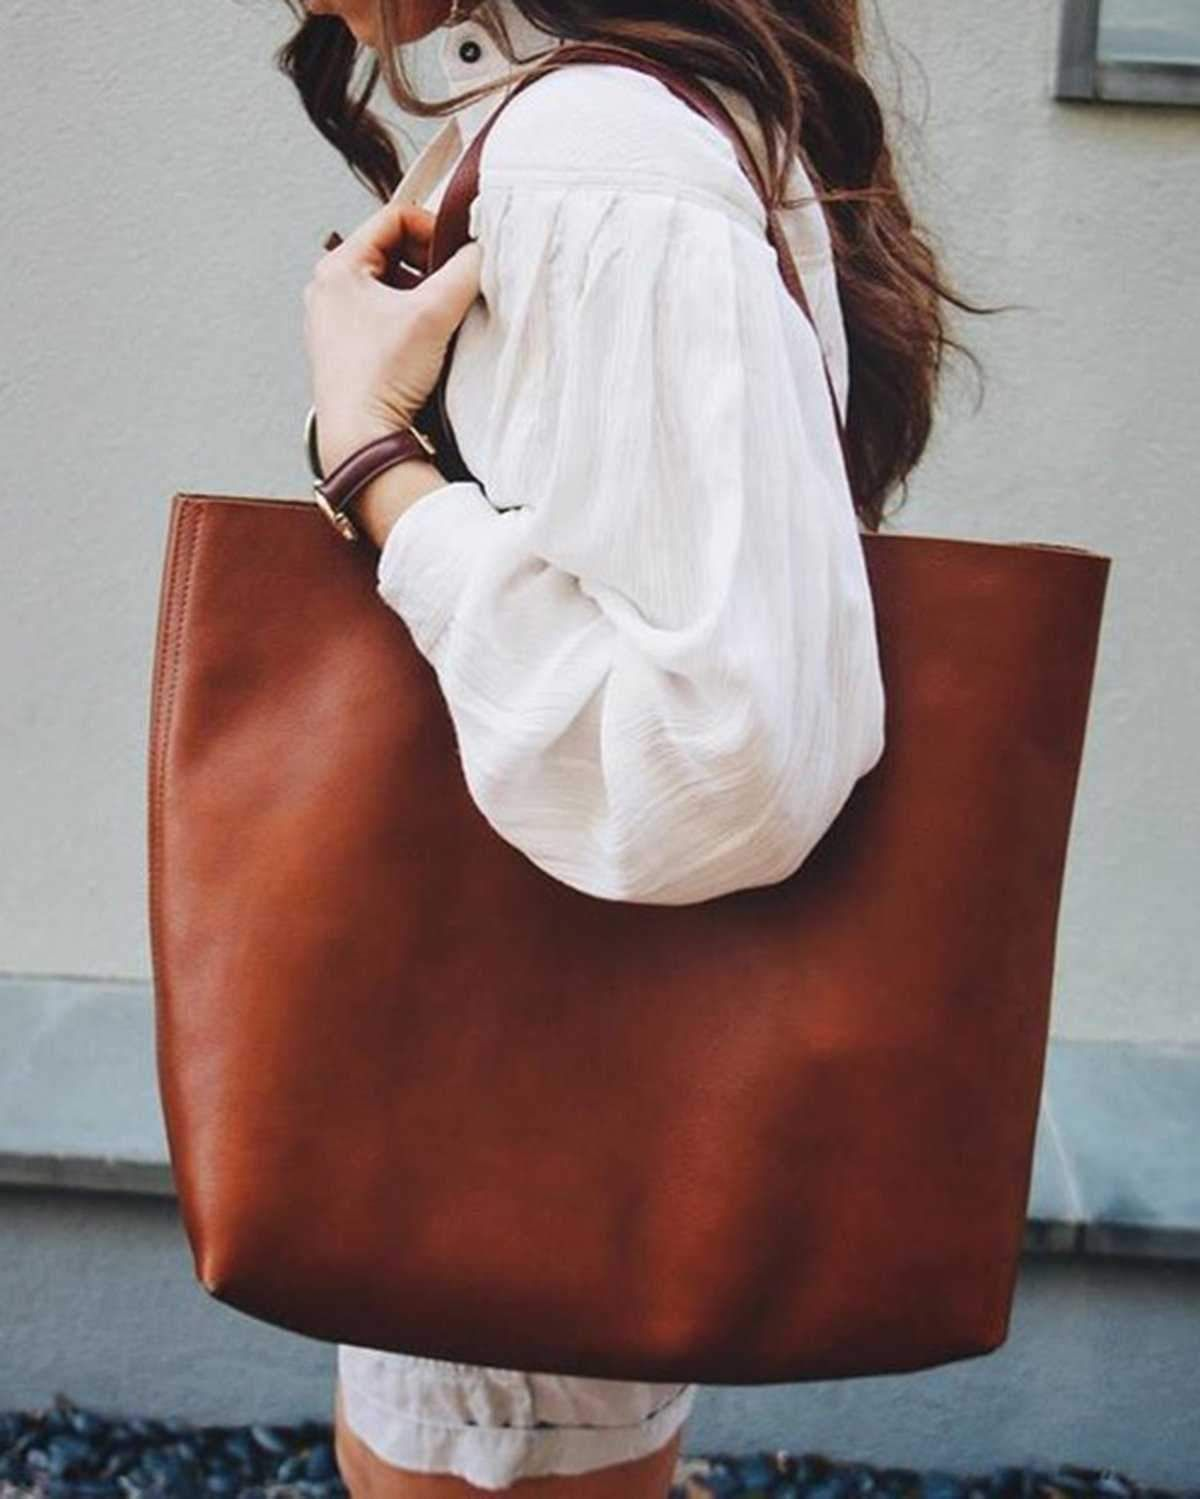 b21369a82d59 Brown Leather Womens Tote Bags School Handbags in 2019